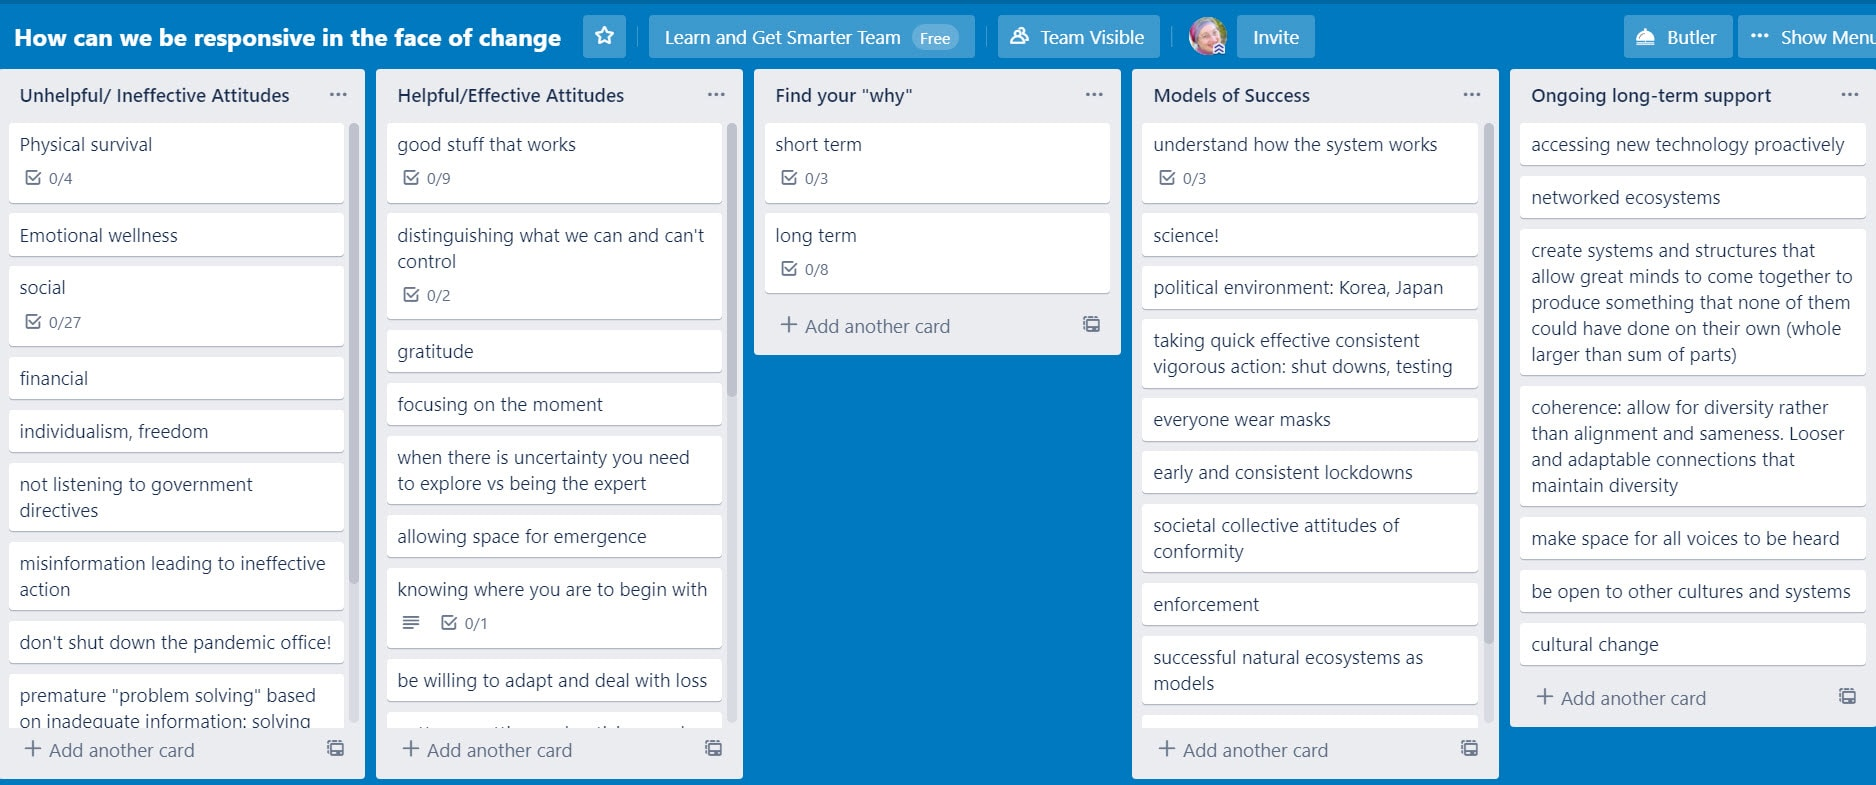 trello mindset course screenshot